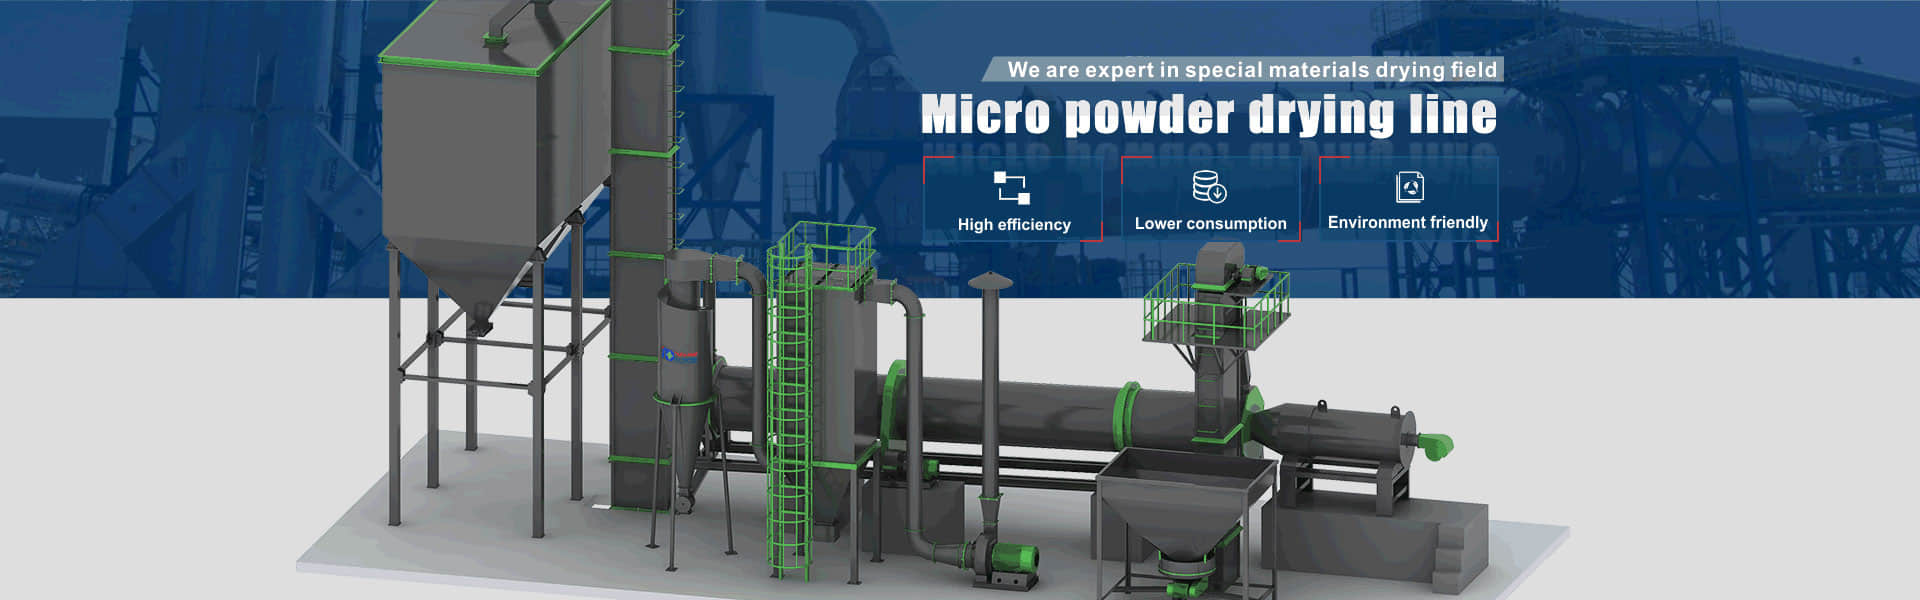 micro powder drying line